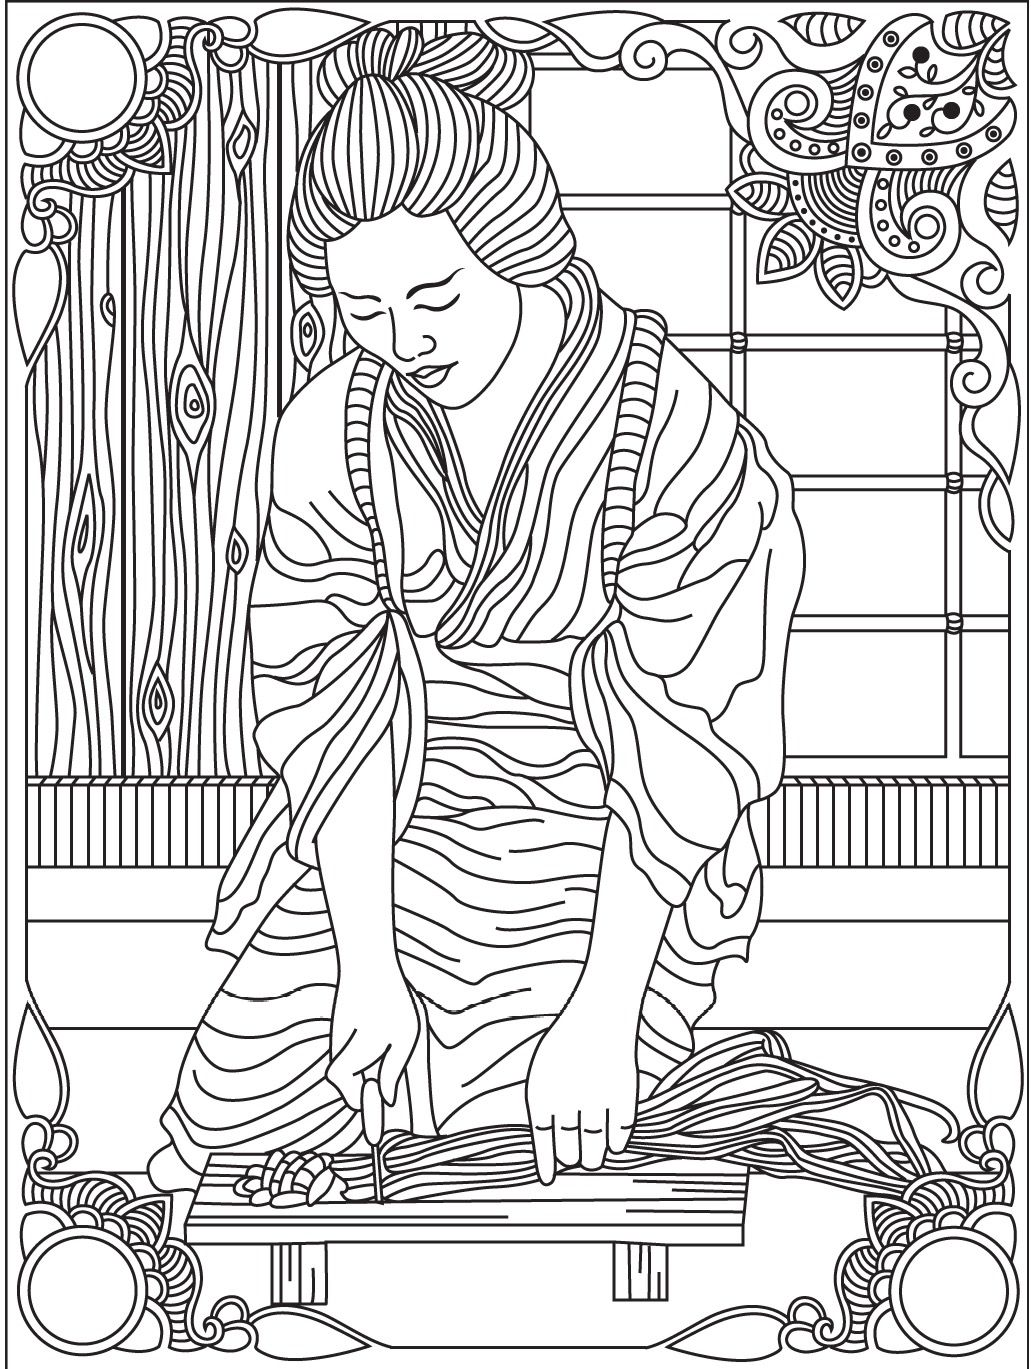 Colouring books for adults japan - Japan Colorish Coloring Book For Adults Mandala Relax By Goodsofttech